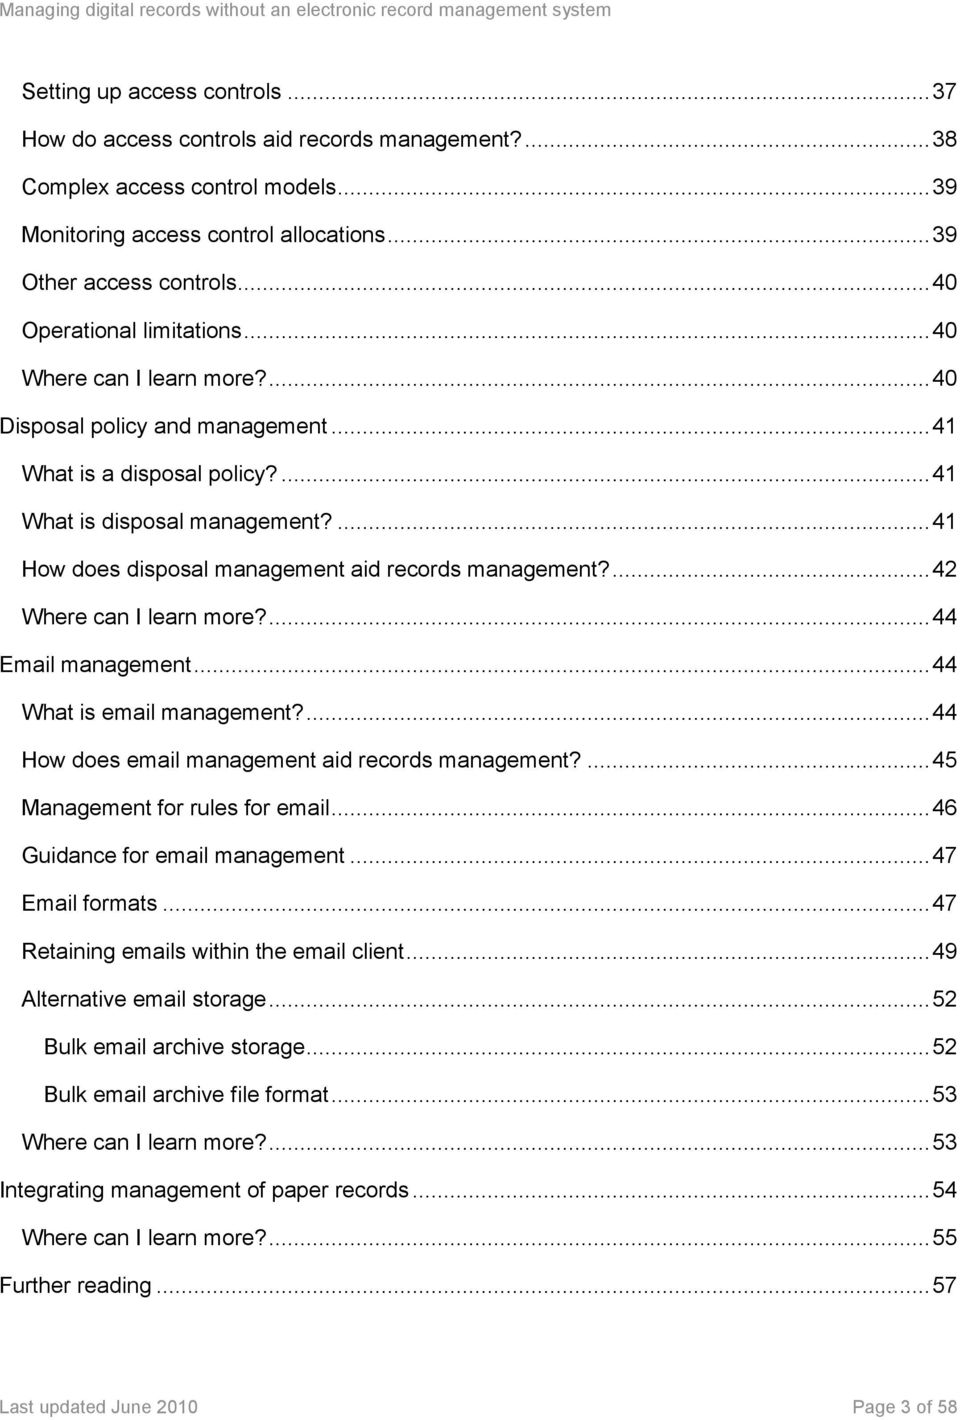 ... 41 How does disposal management aid records management?... 42 Where can I learn more?... 44 Email management... 44 What is email management?... 44 How does email management aid records management?